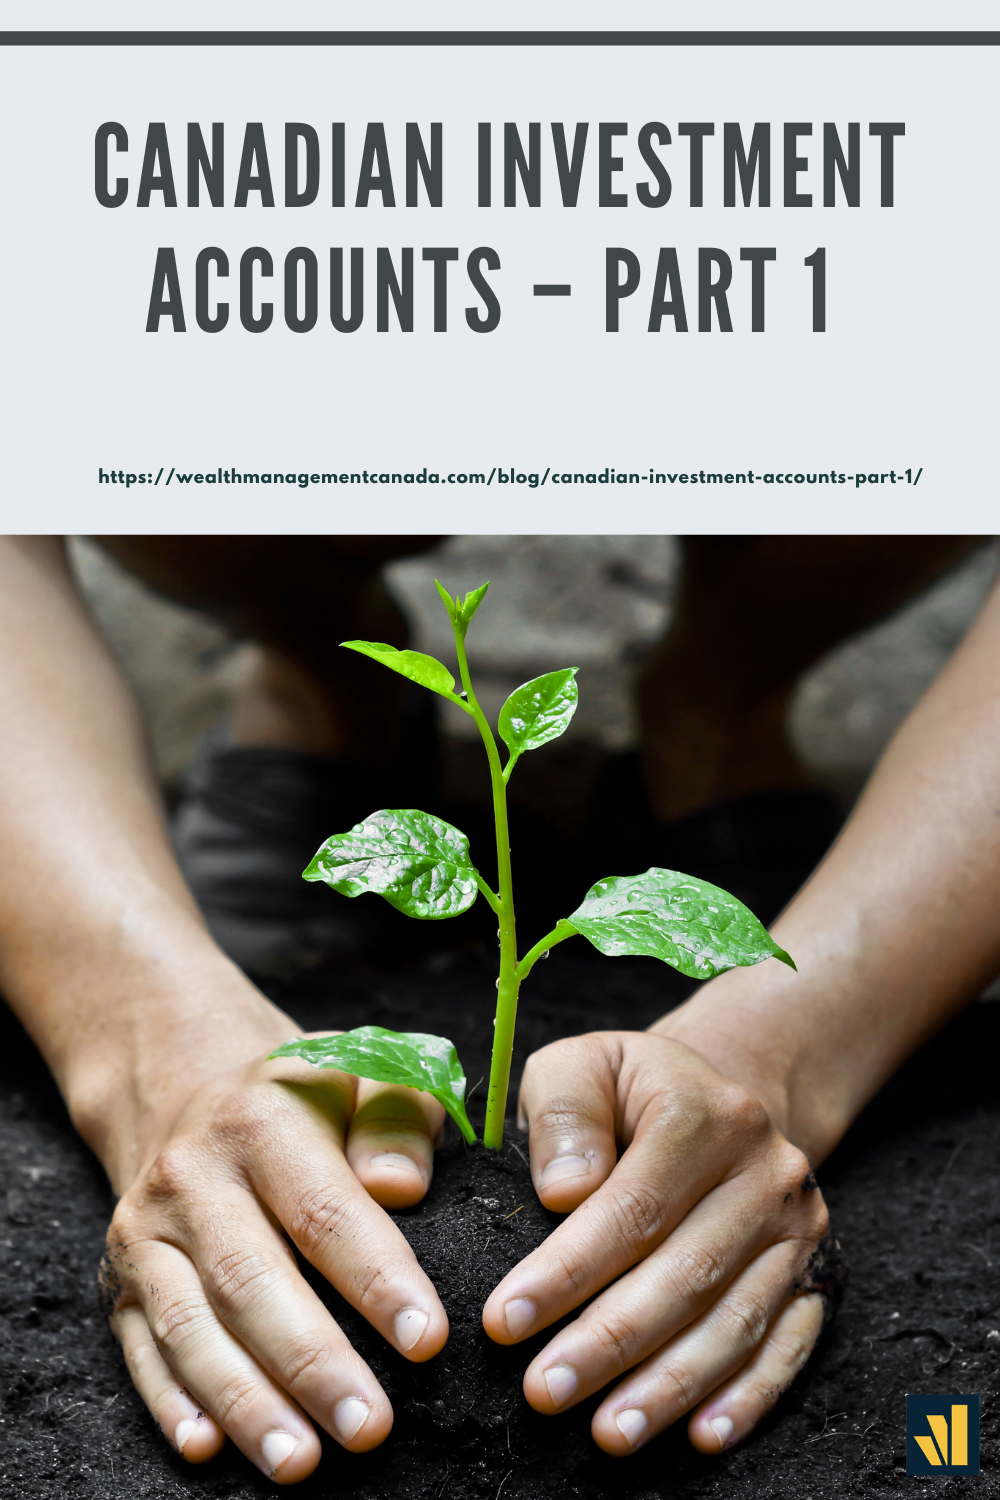 Canadian Investment Accounts